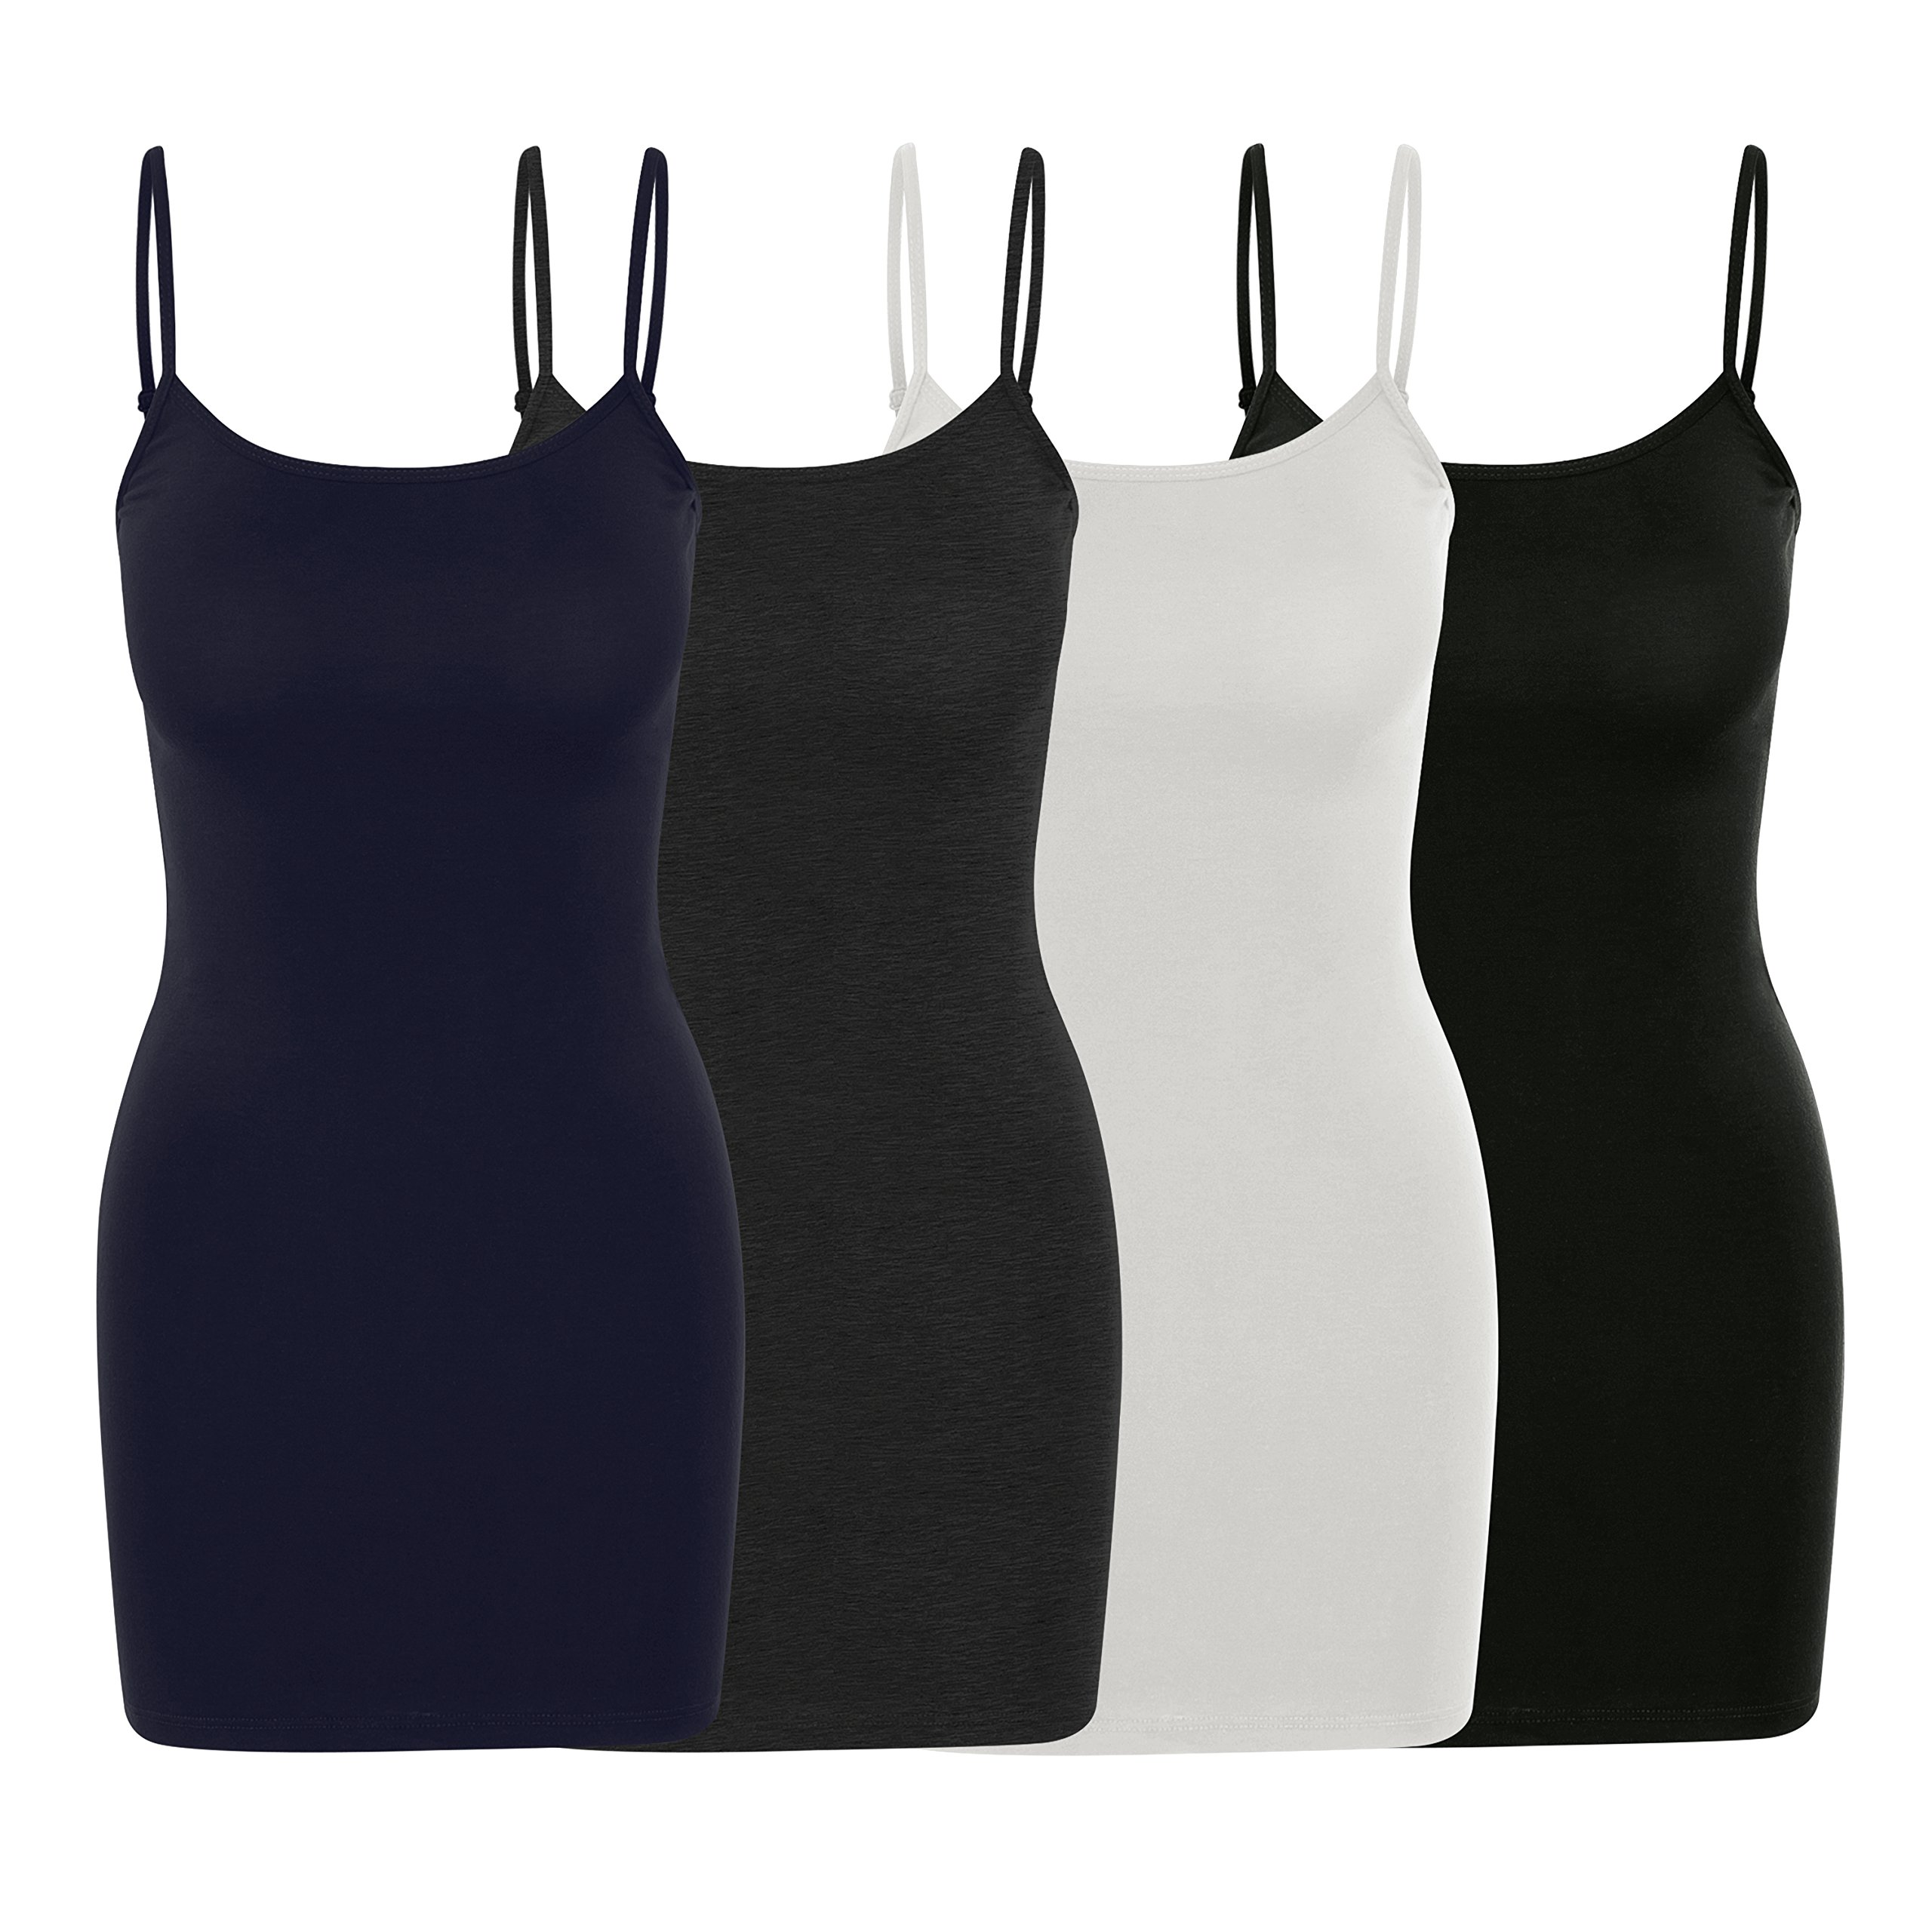 Nolabel [WT354 4 Pack Women's Multi Color Basic Active Long Length Adjustable Spaghetti Strap Cami Tank Top [NY/CH/BK/WH] 3XL